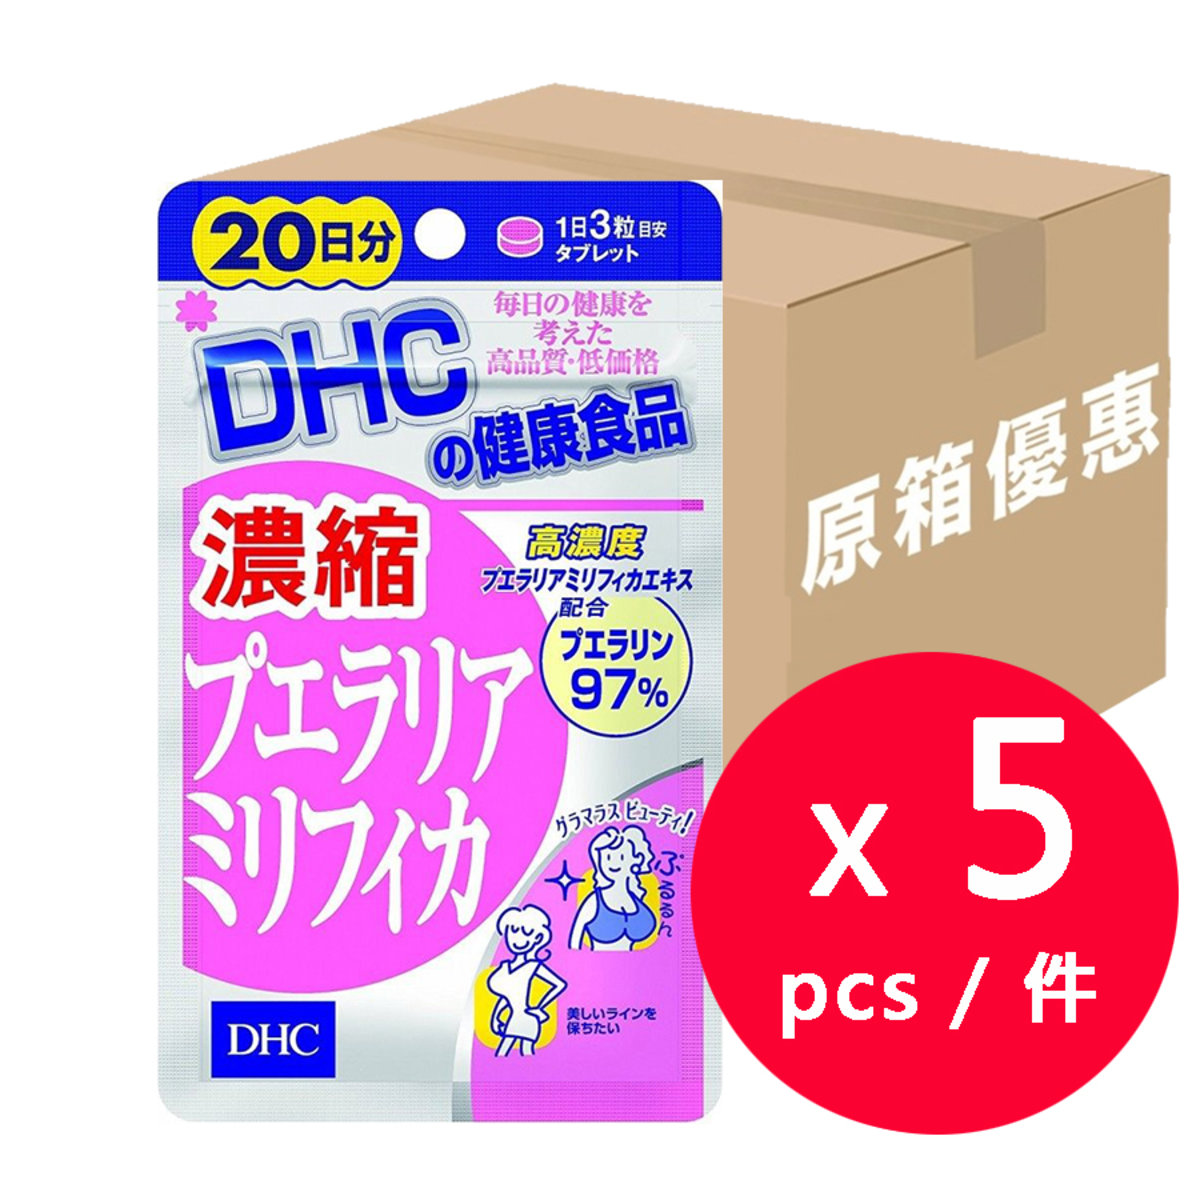 DHC Concentrated Pueraria milifica (20 Days) x 5 packs (Parallel Import)